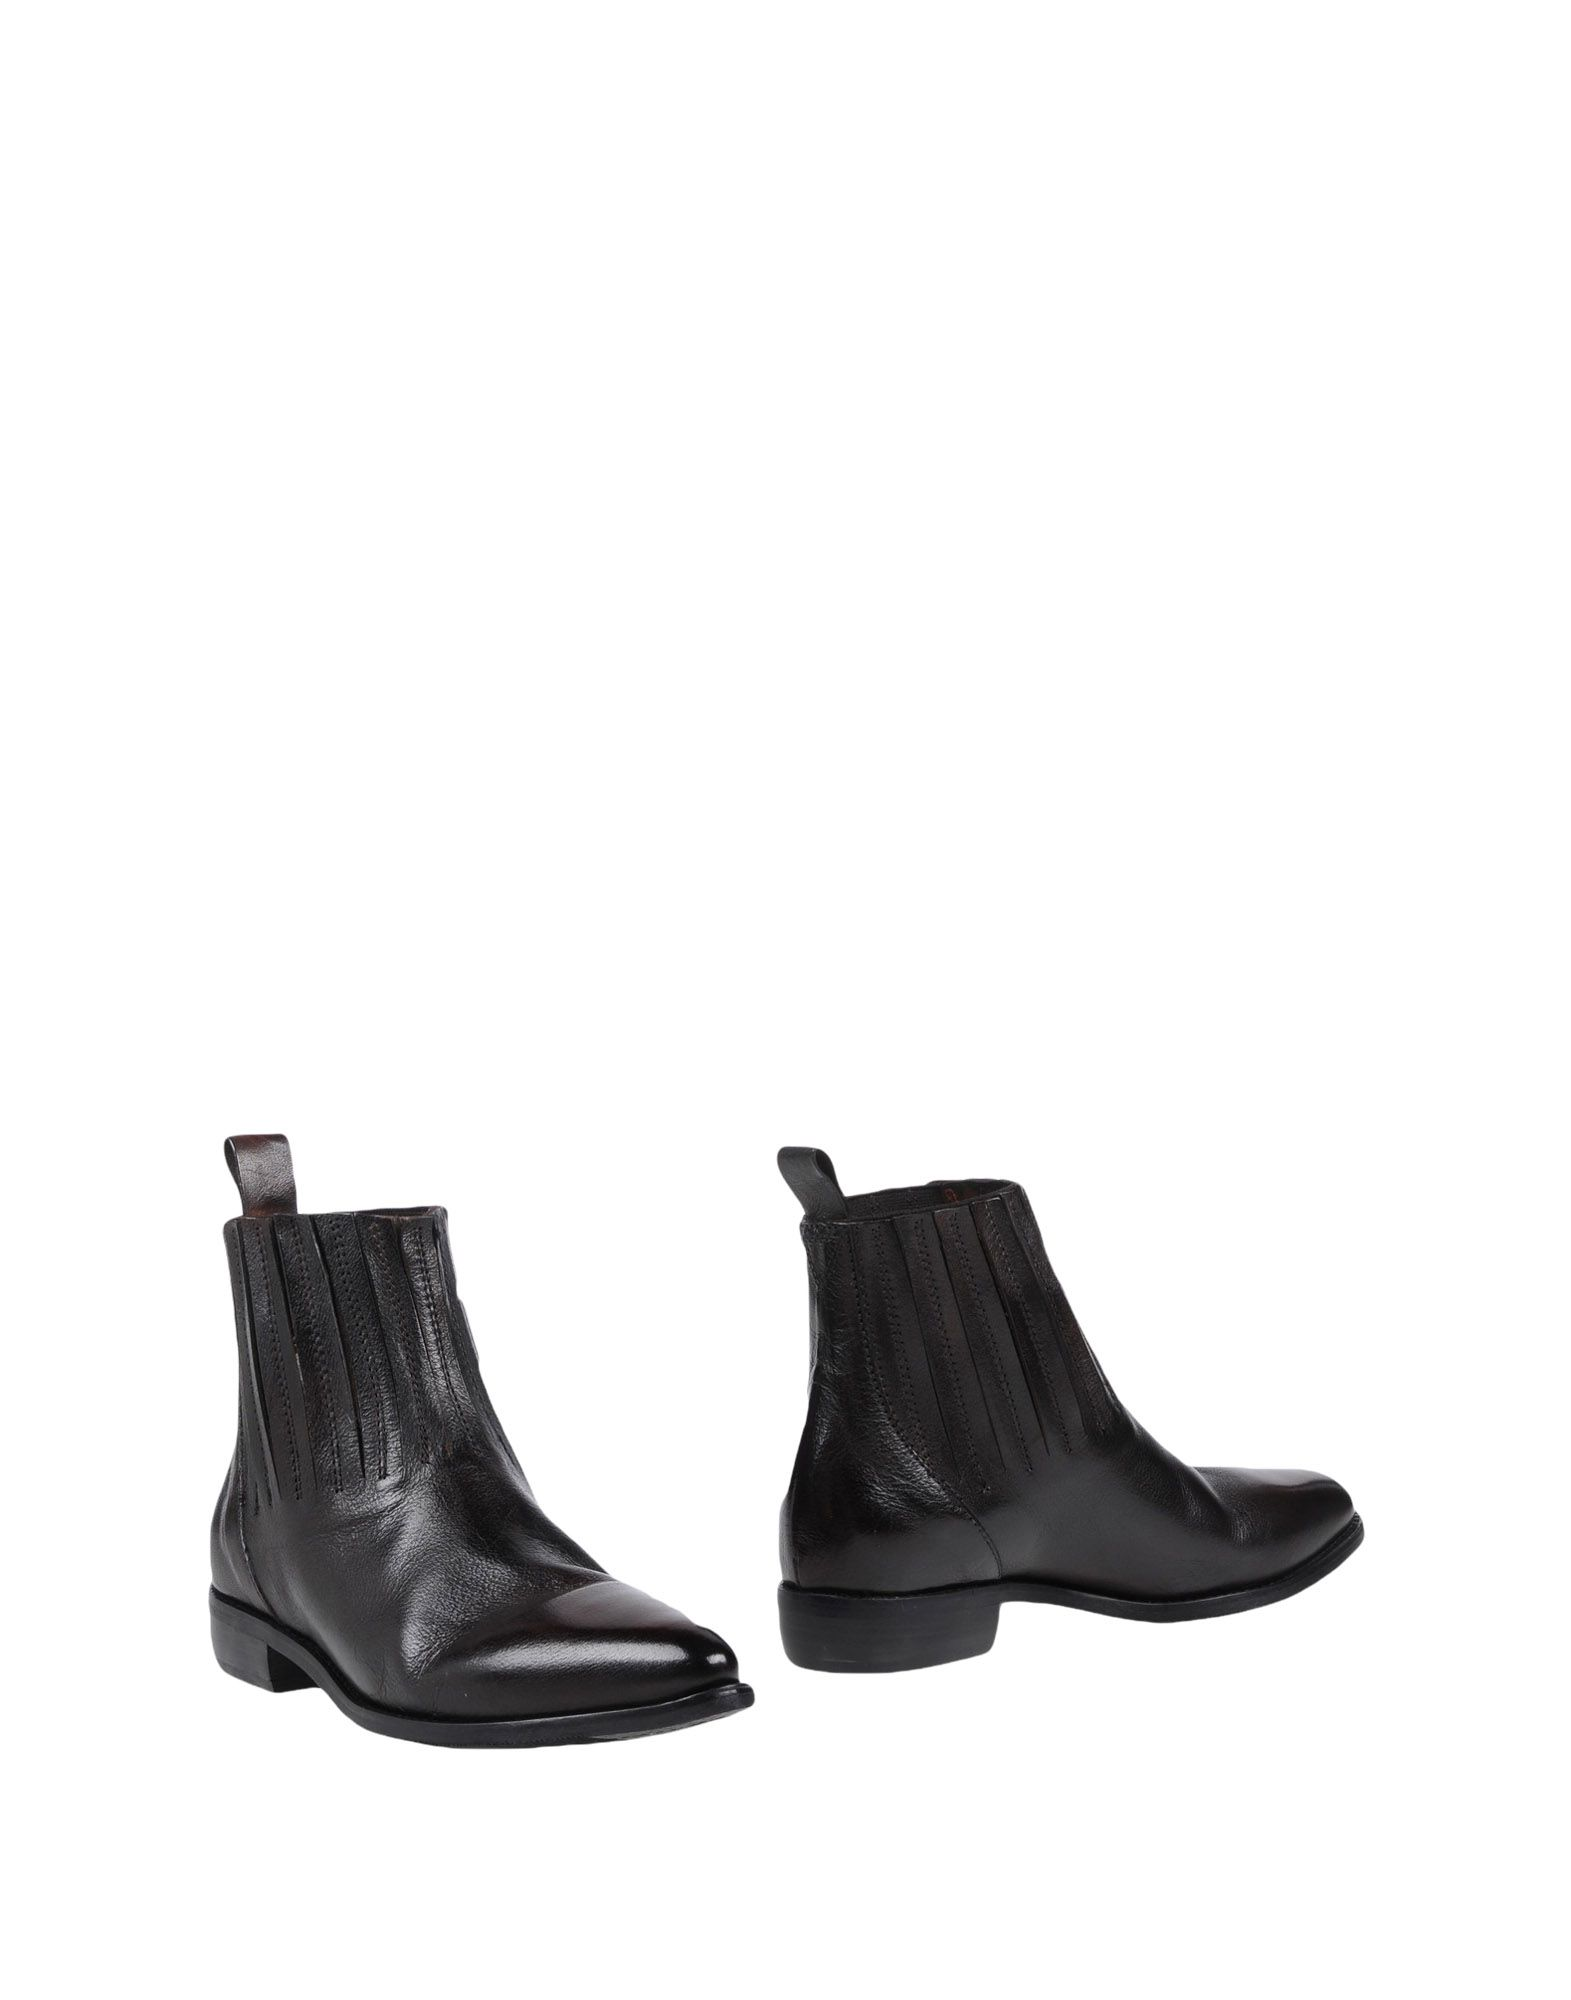 ALEXANDER HOTTO Ankle Boot in Cocoa